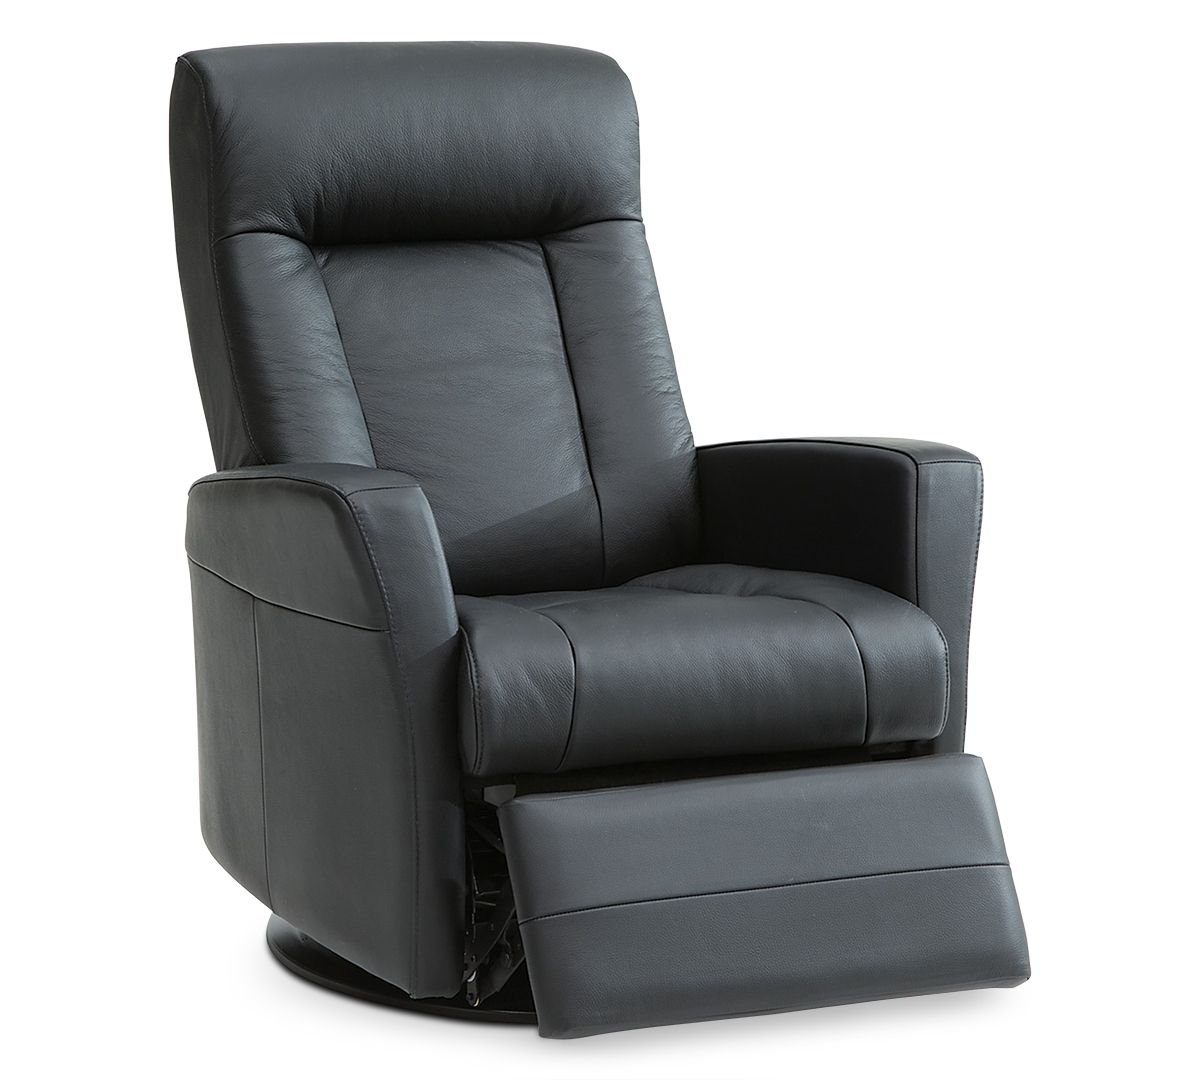 Faversham 31 Leather Power Recliner Valencia Dune Beige In 2020